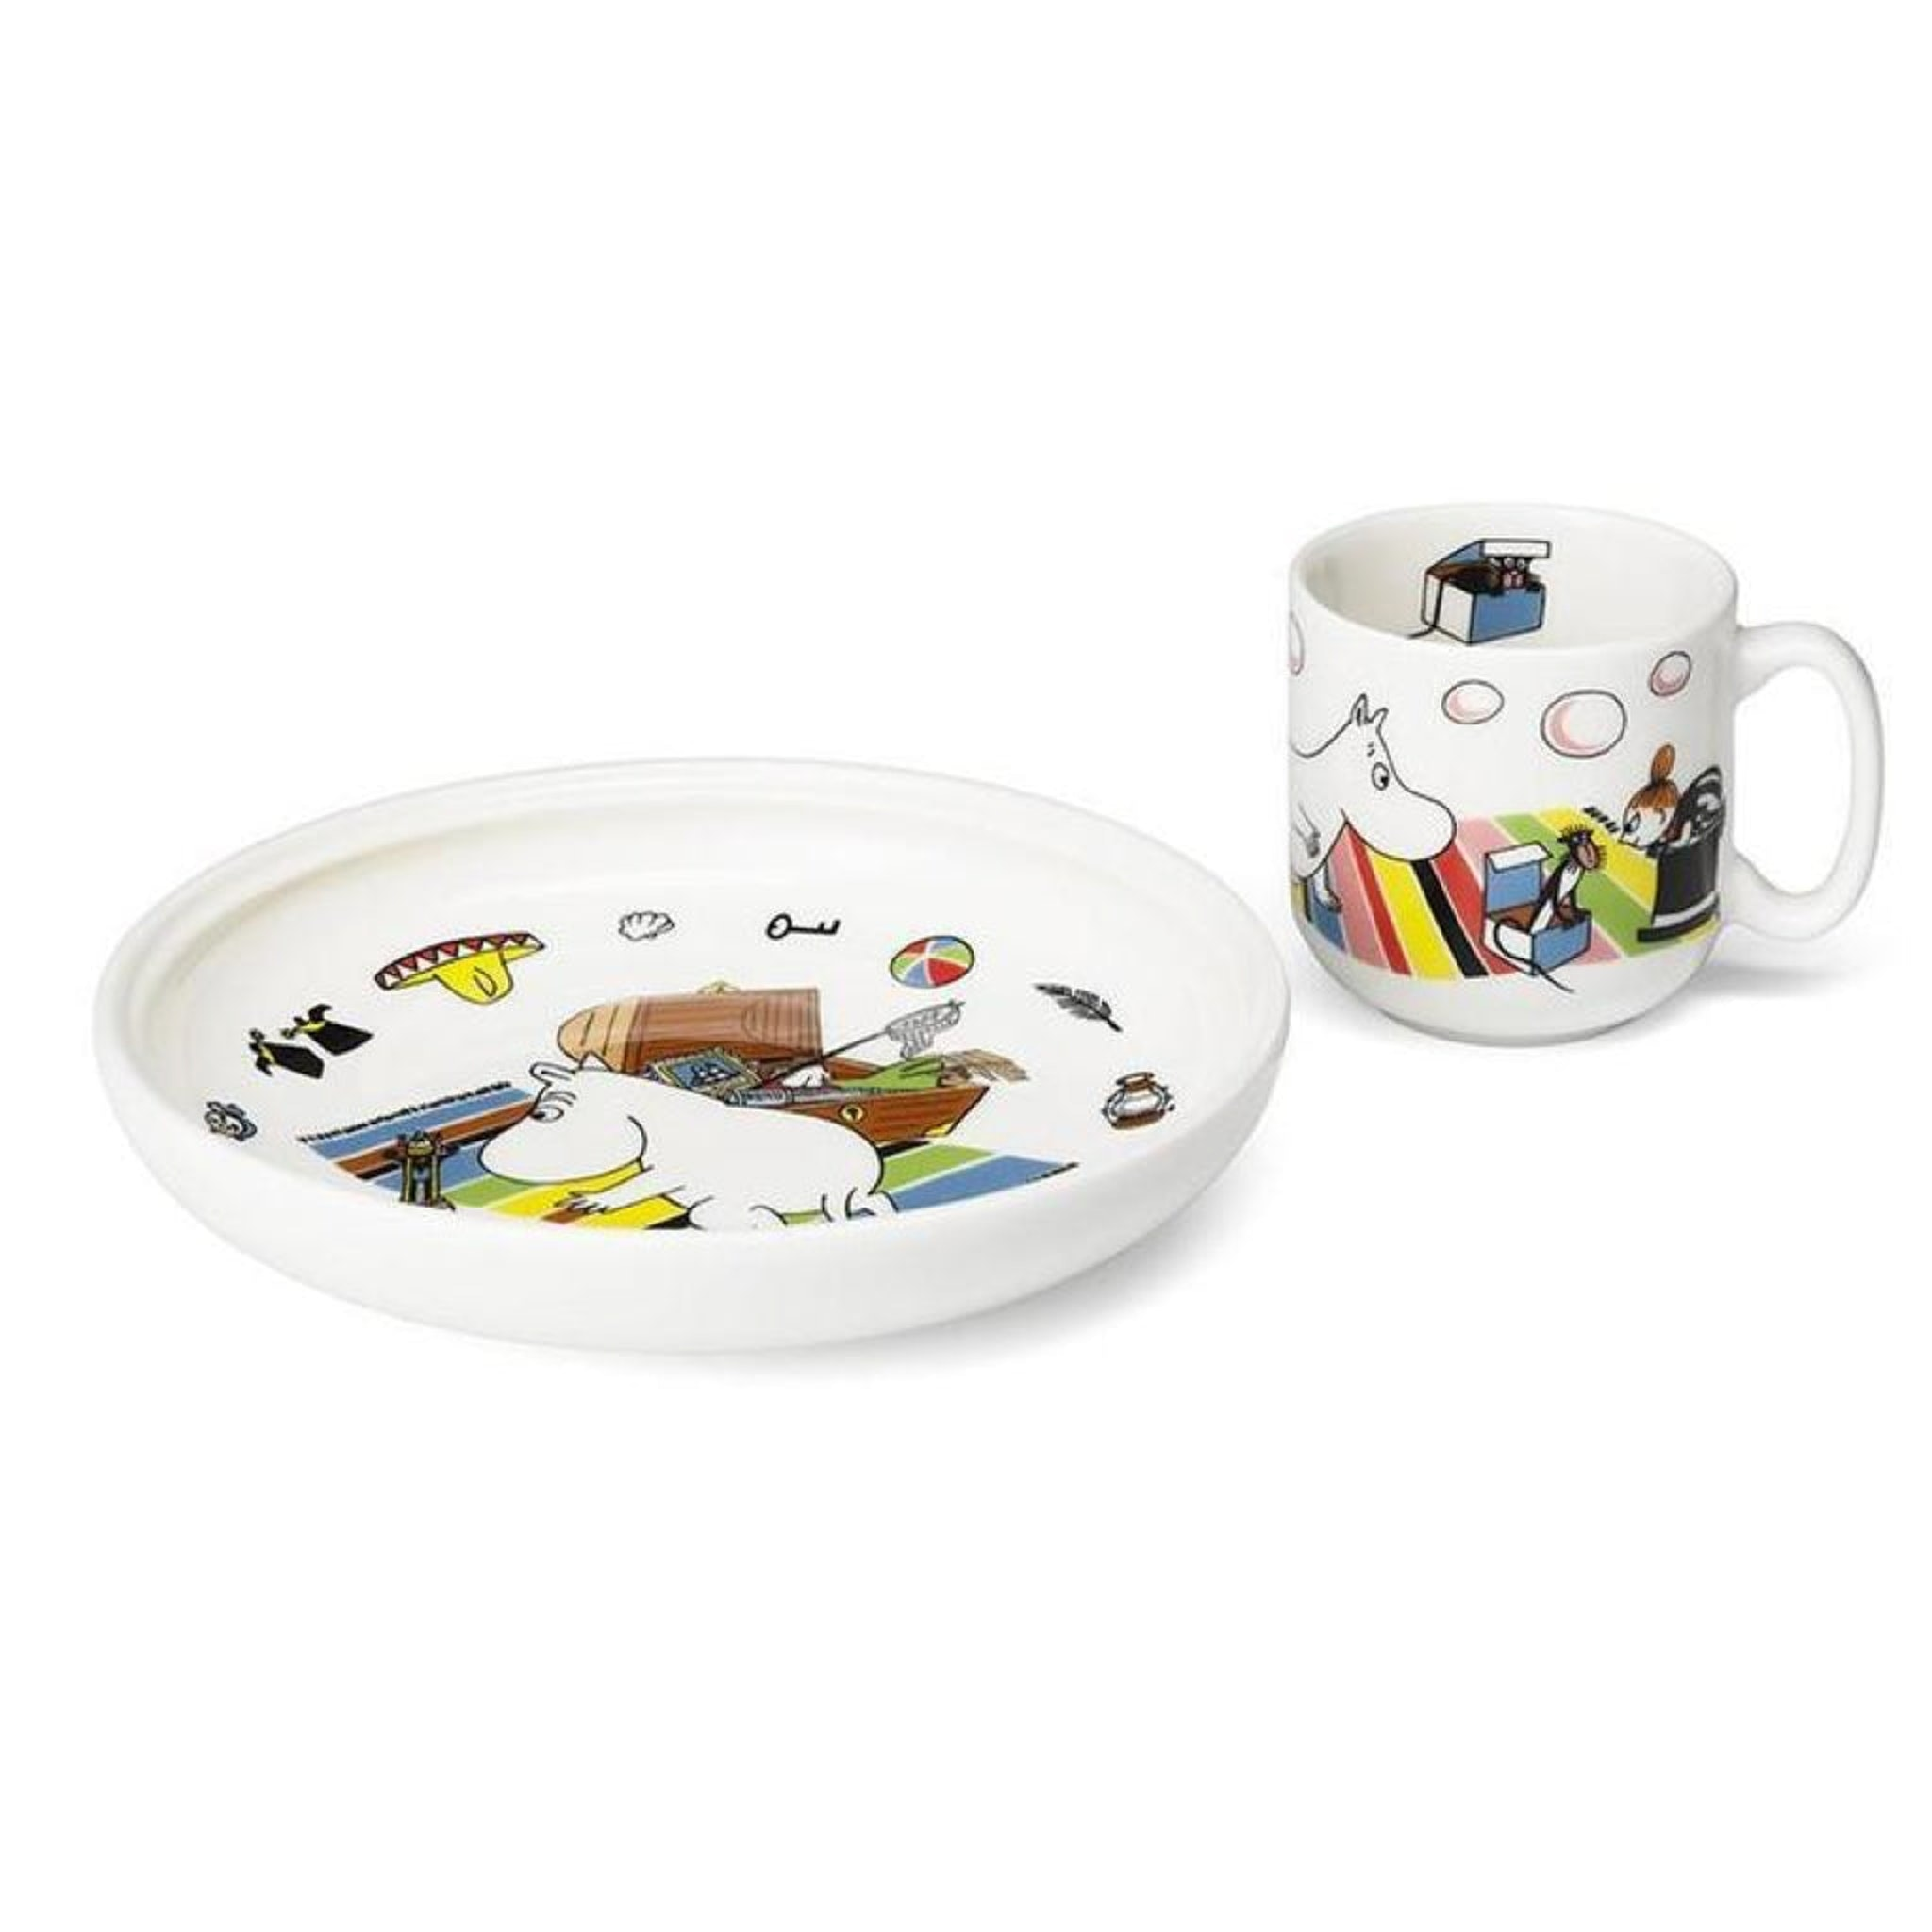 Moomin Children's Set Moomintroll by Arabia